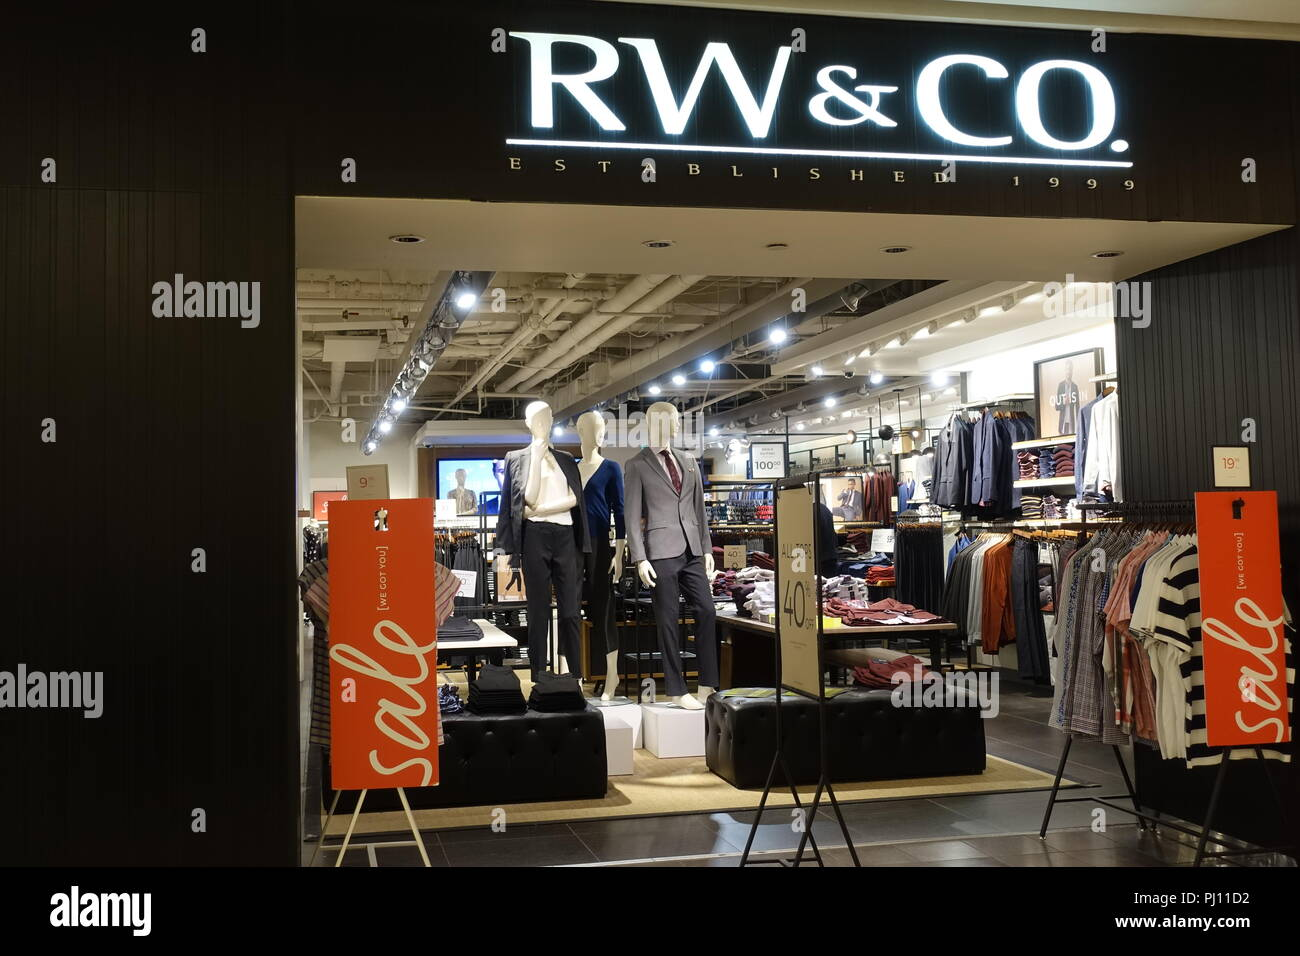 August 31 2018- Front Store RW & CO. shop in Vancouver, BC Canada - Stock Image